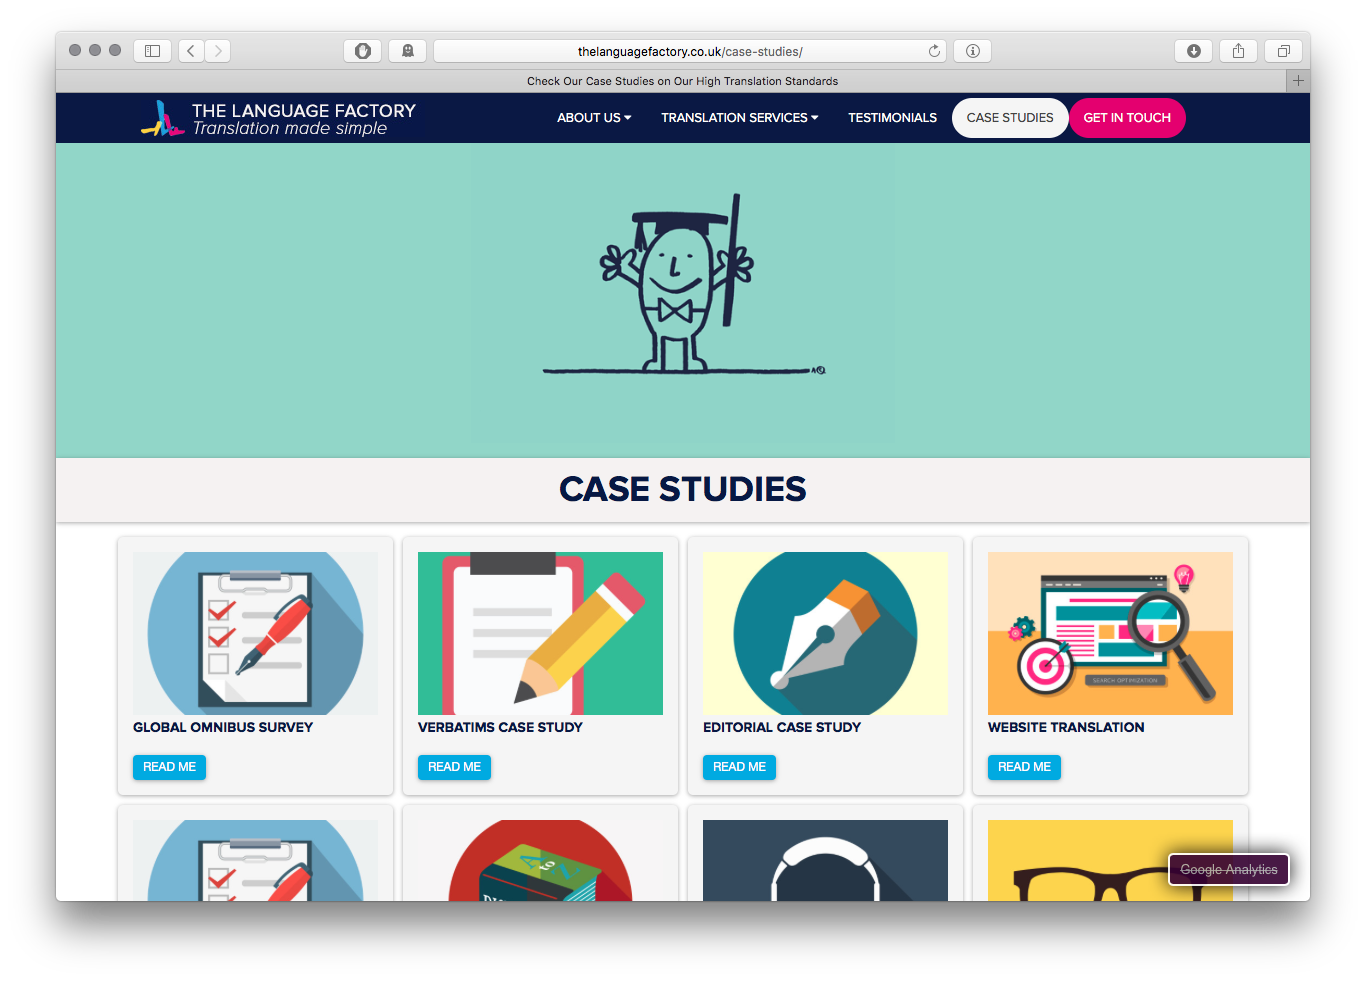 The Language Factory Case Studies page